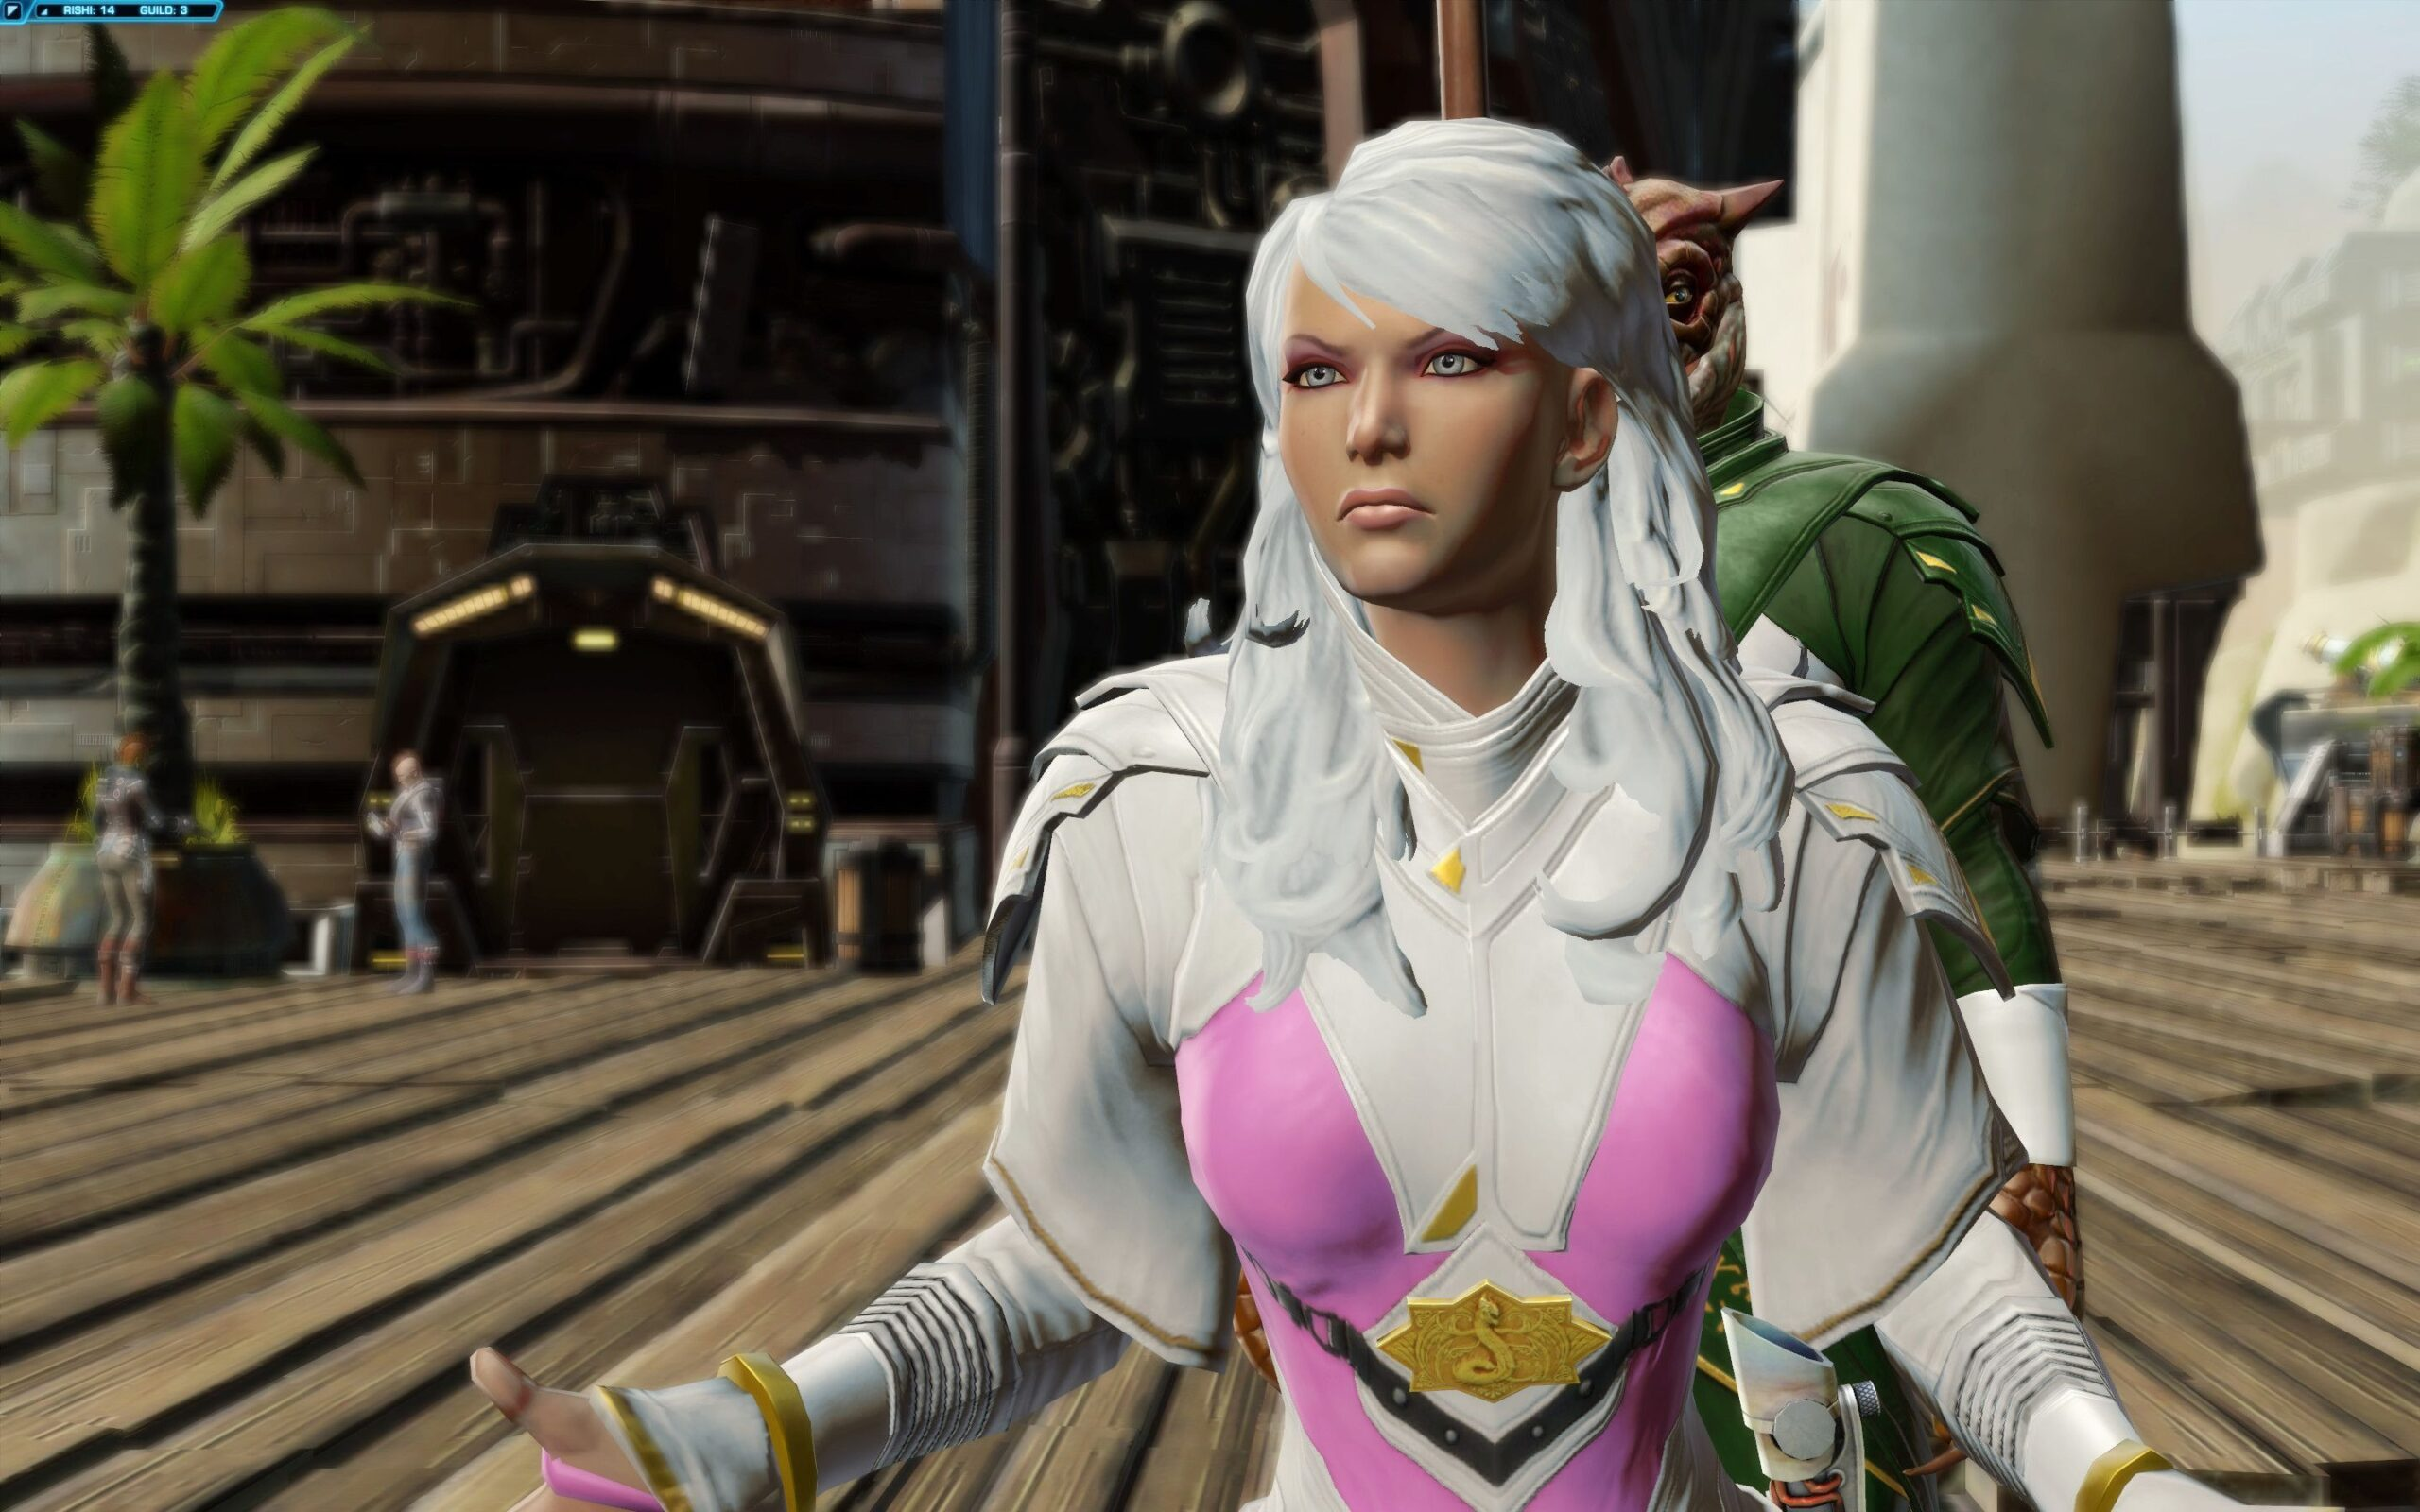 Mmo games for girls